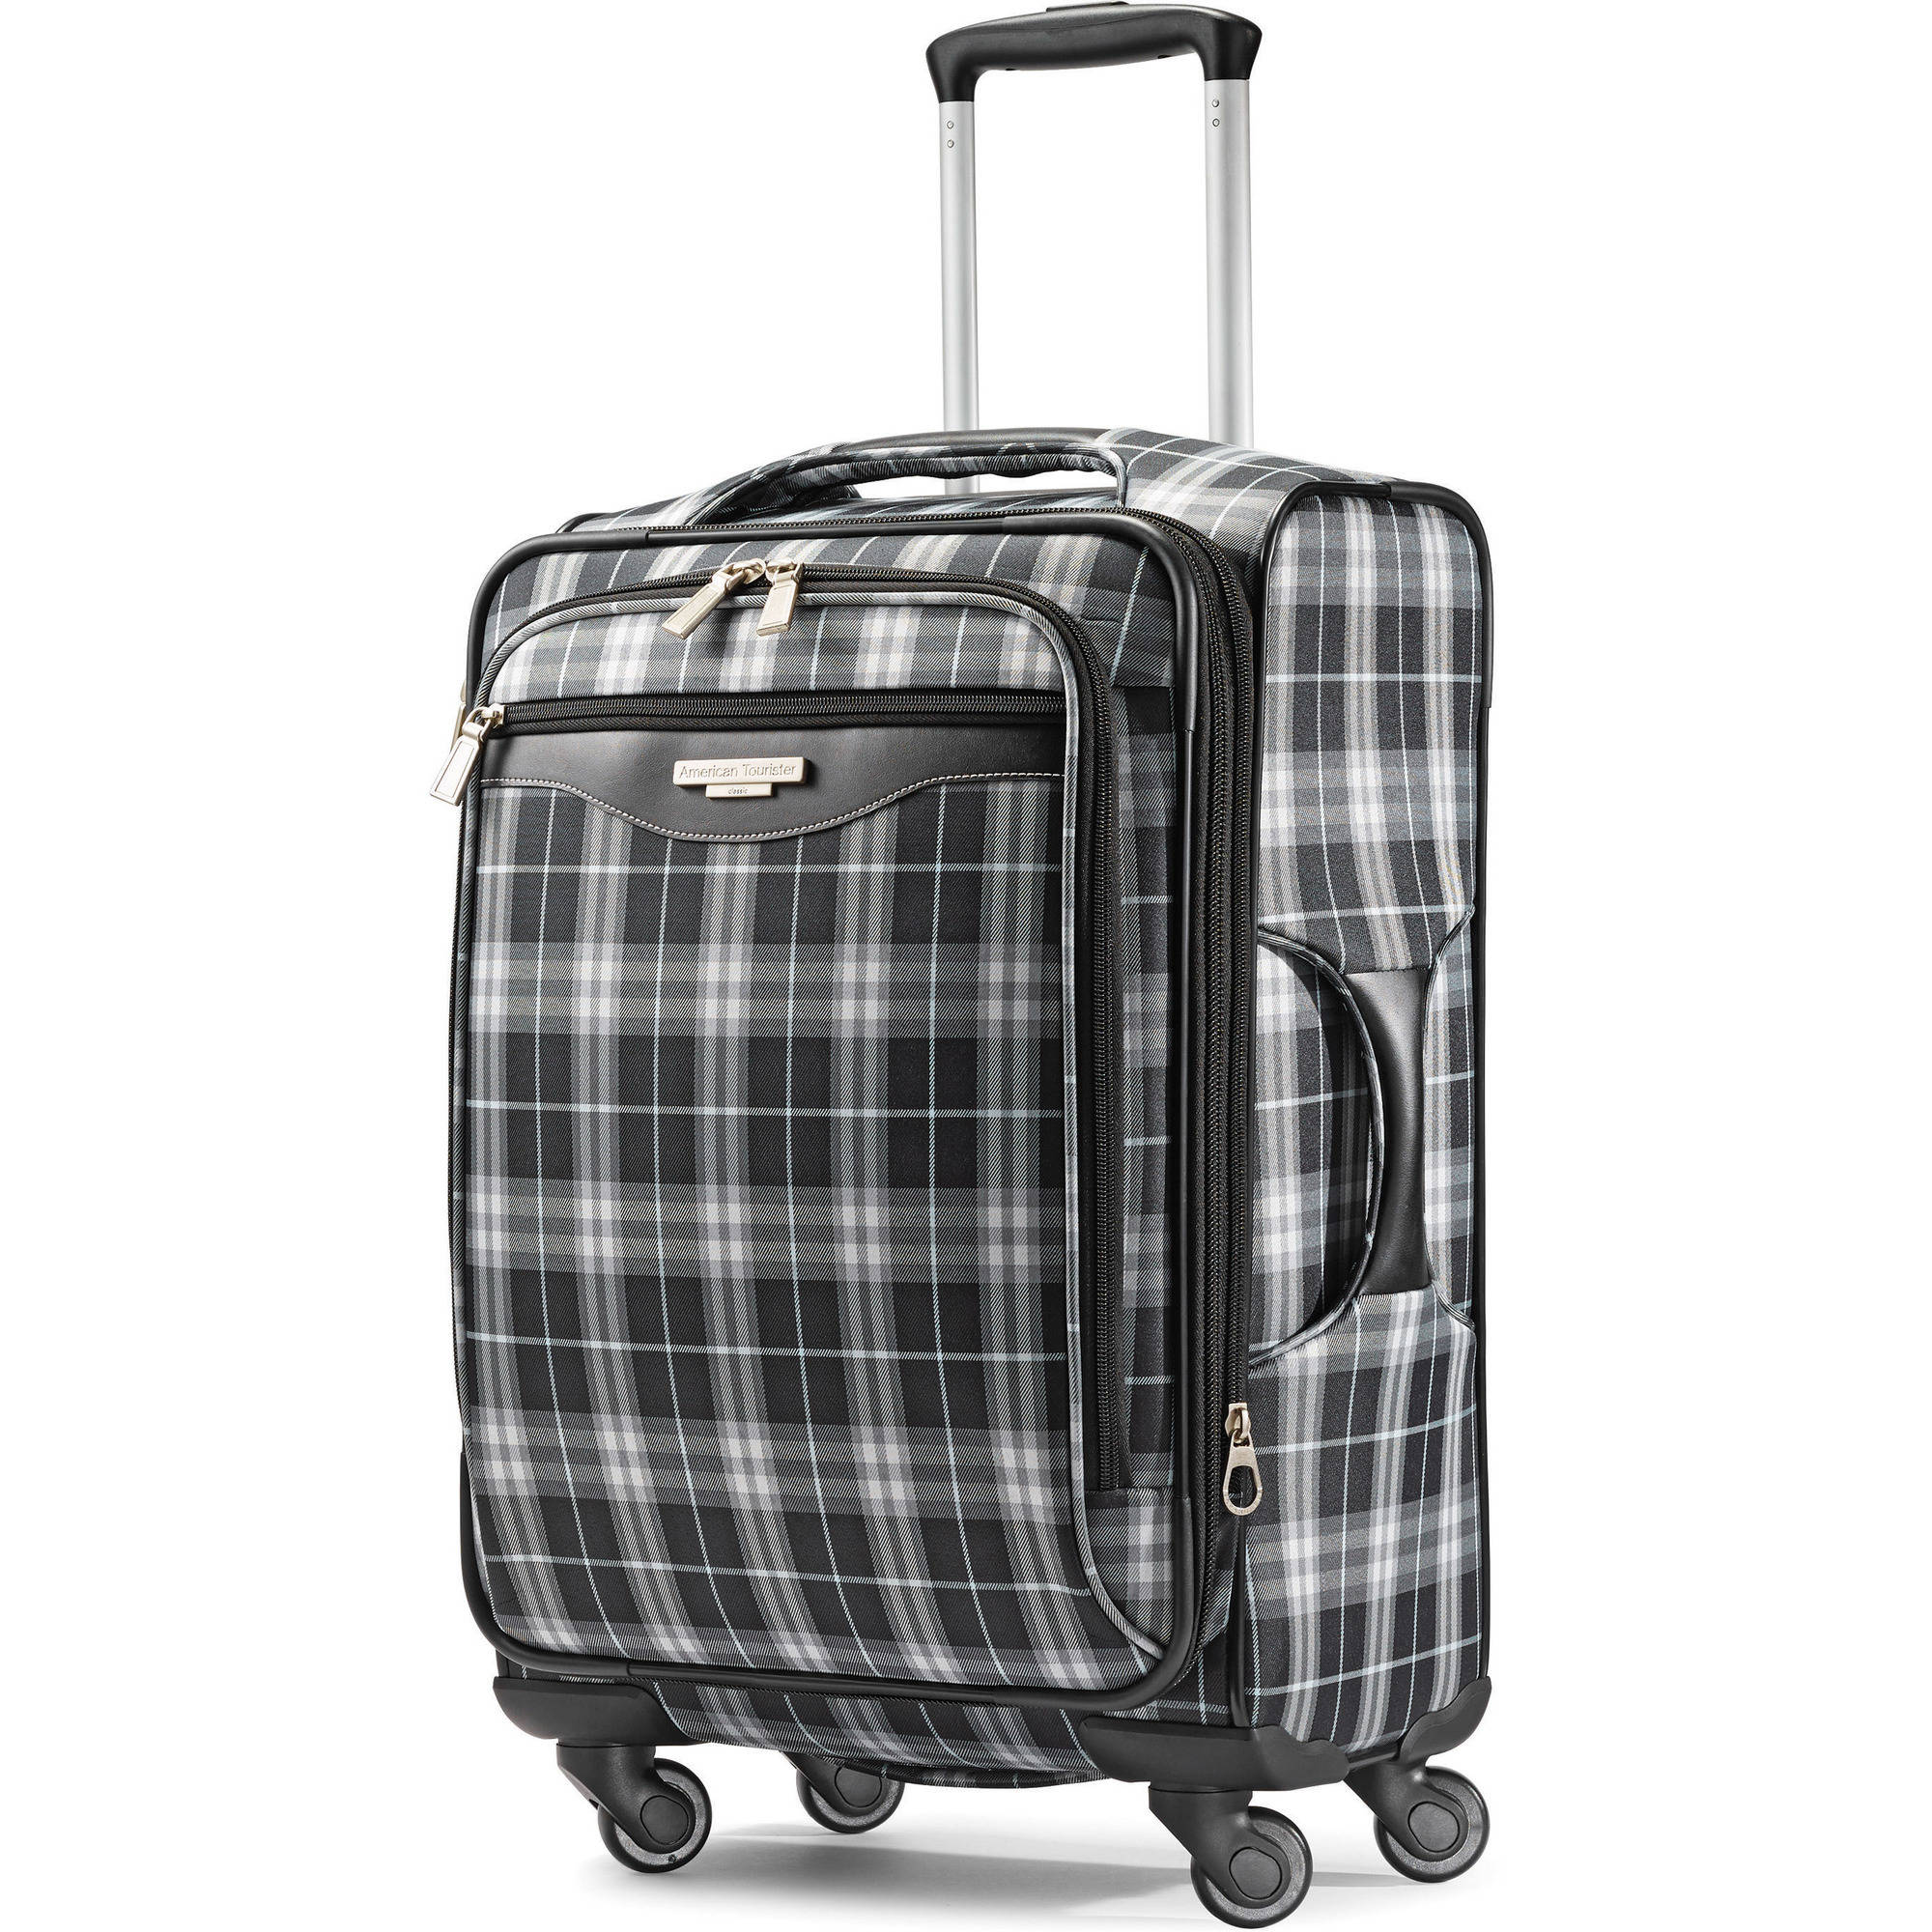 American Tourister Plaid Fashion 21-Inch Spinner Upright